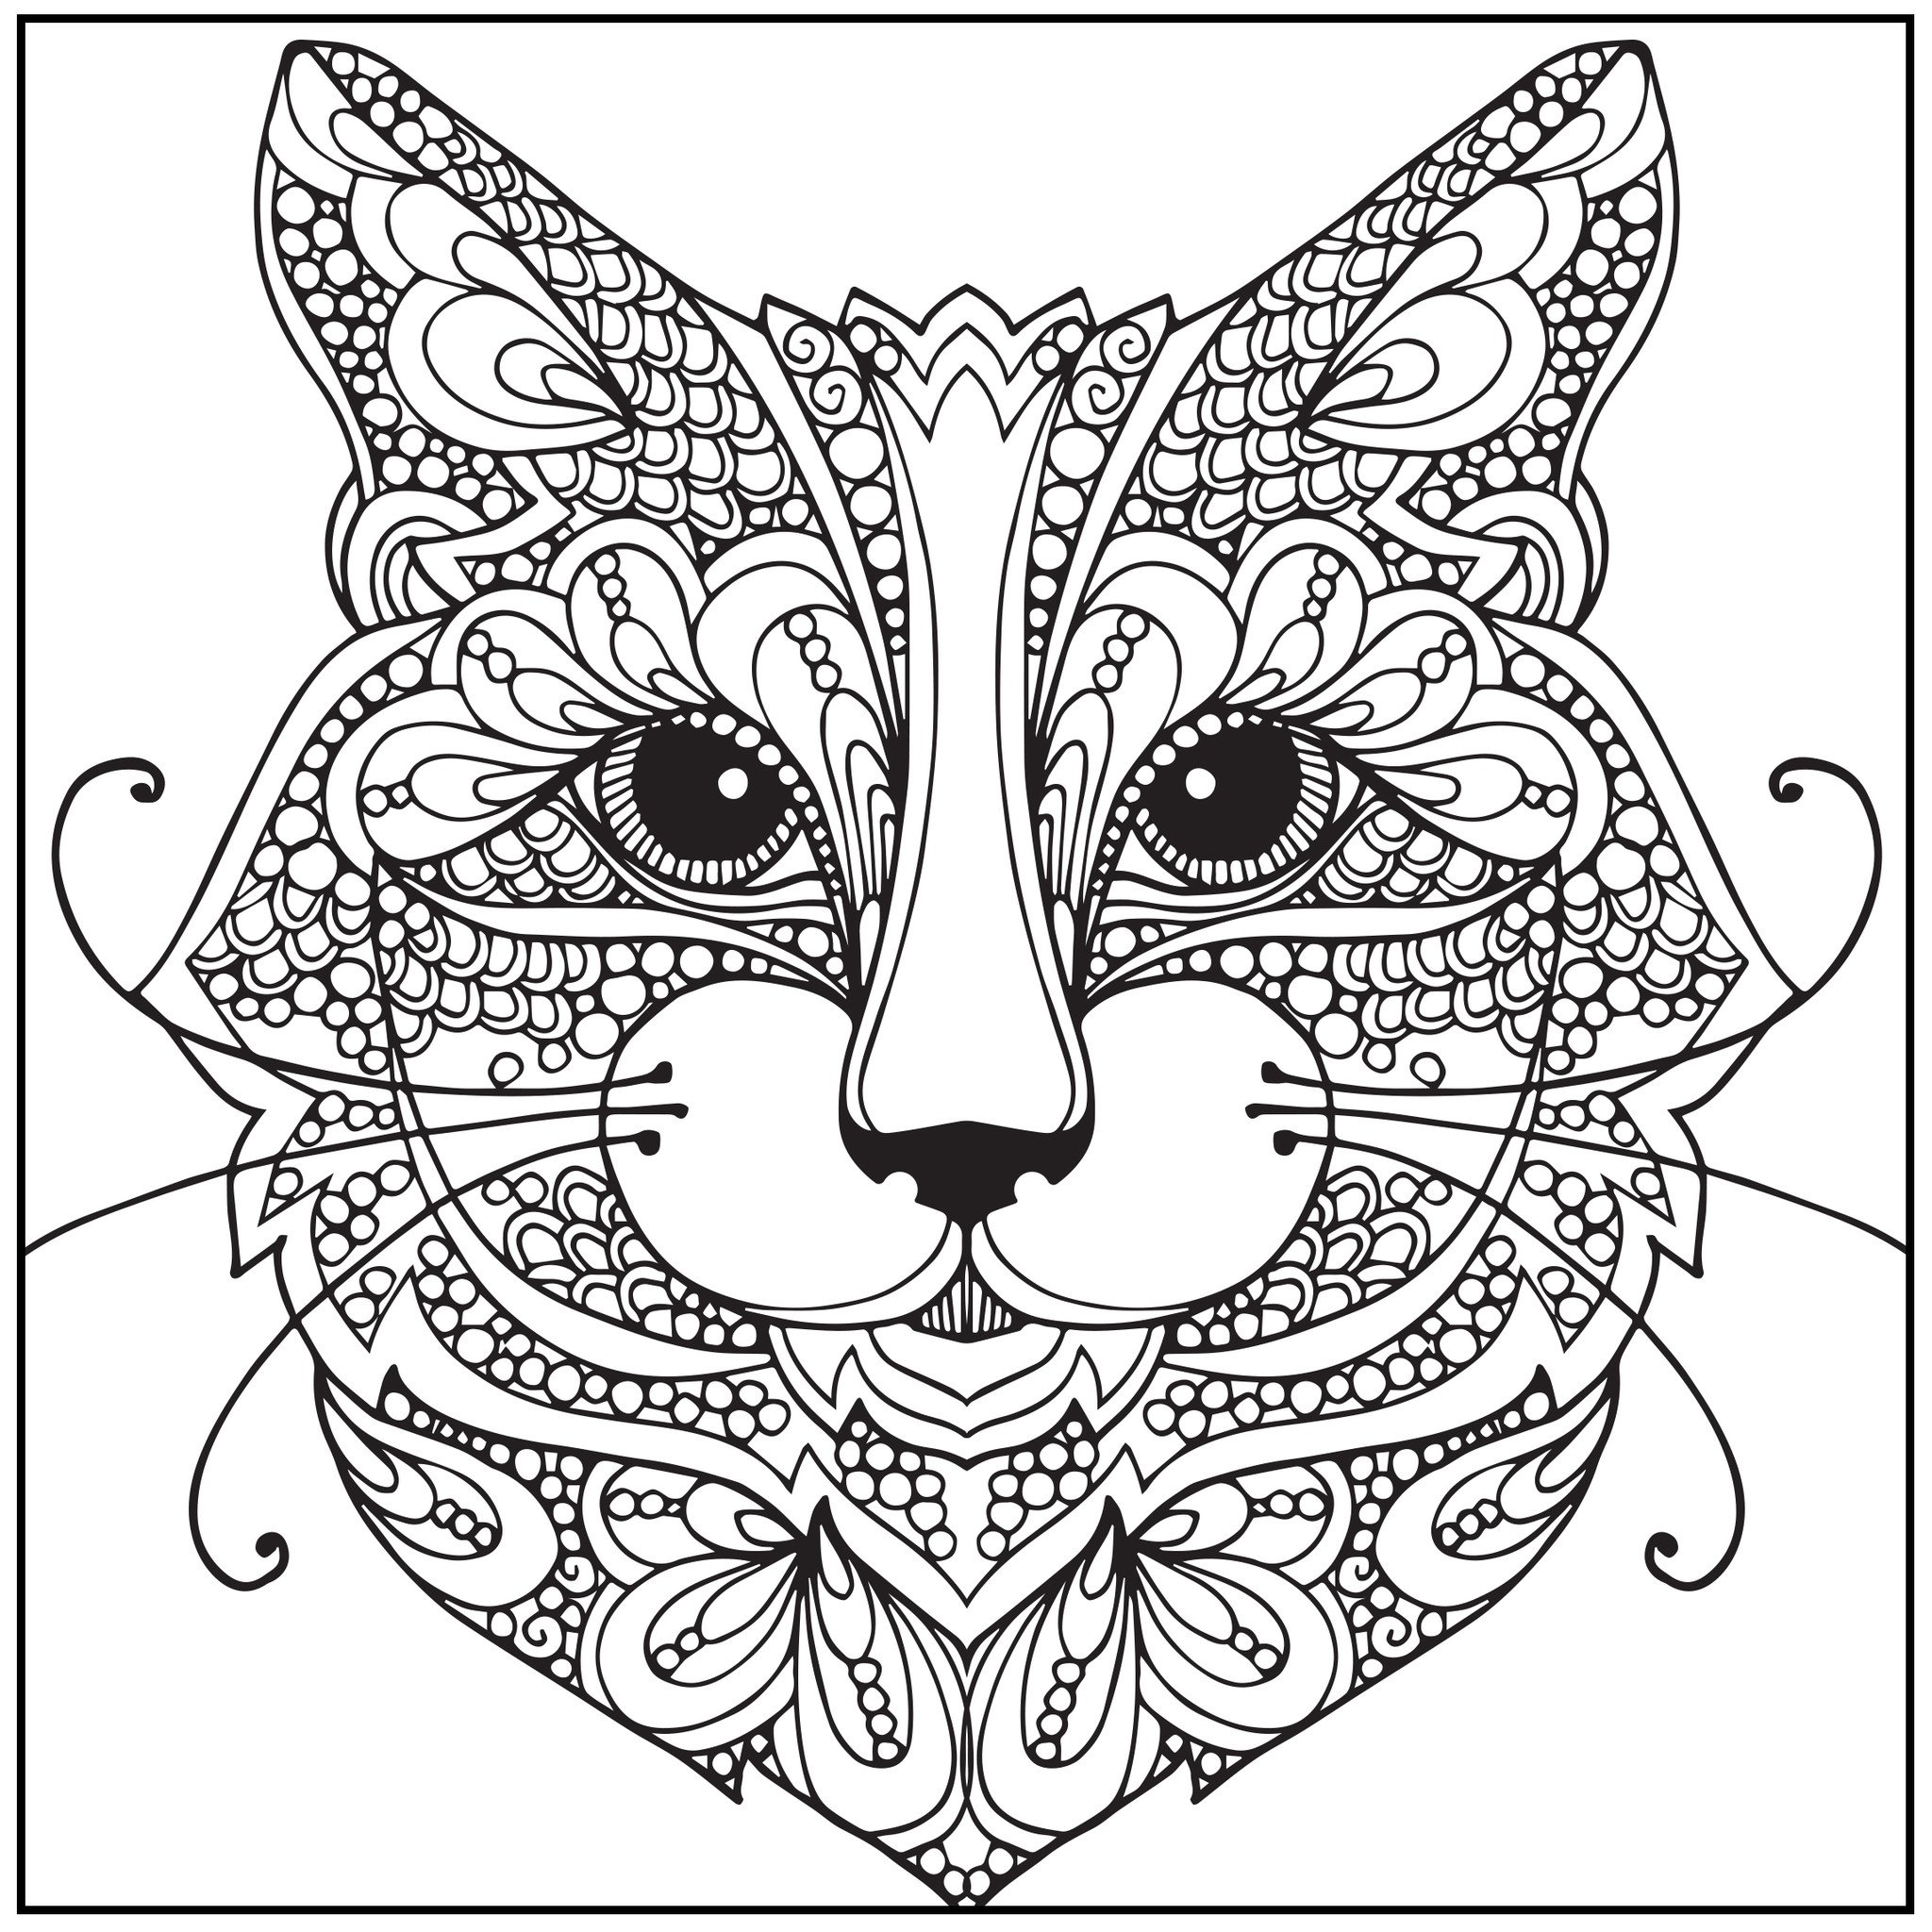 Color_with_music_wild_about_cats_adult_coloring_book_blank_page